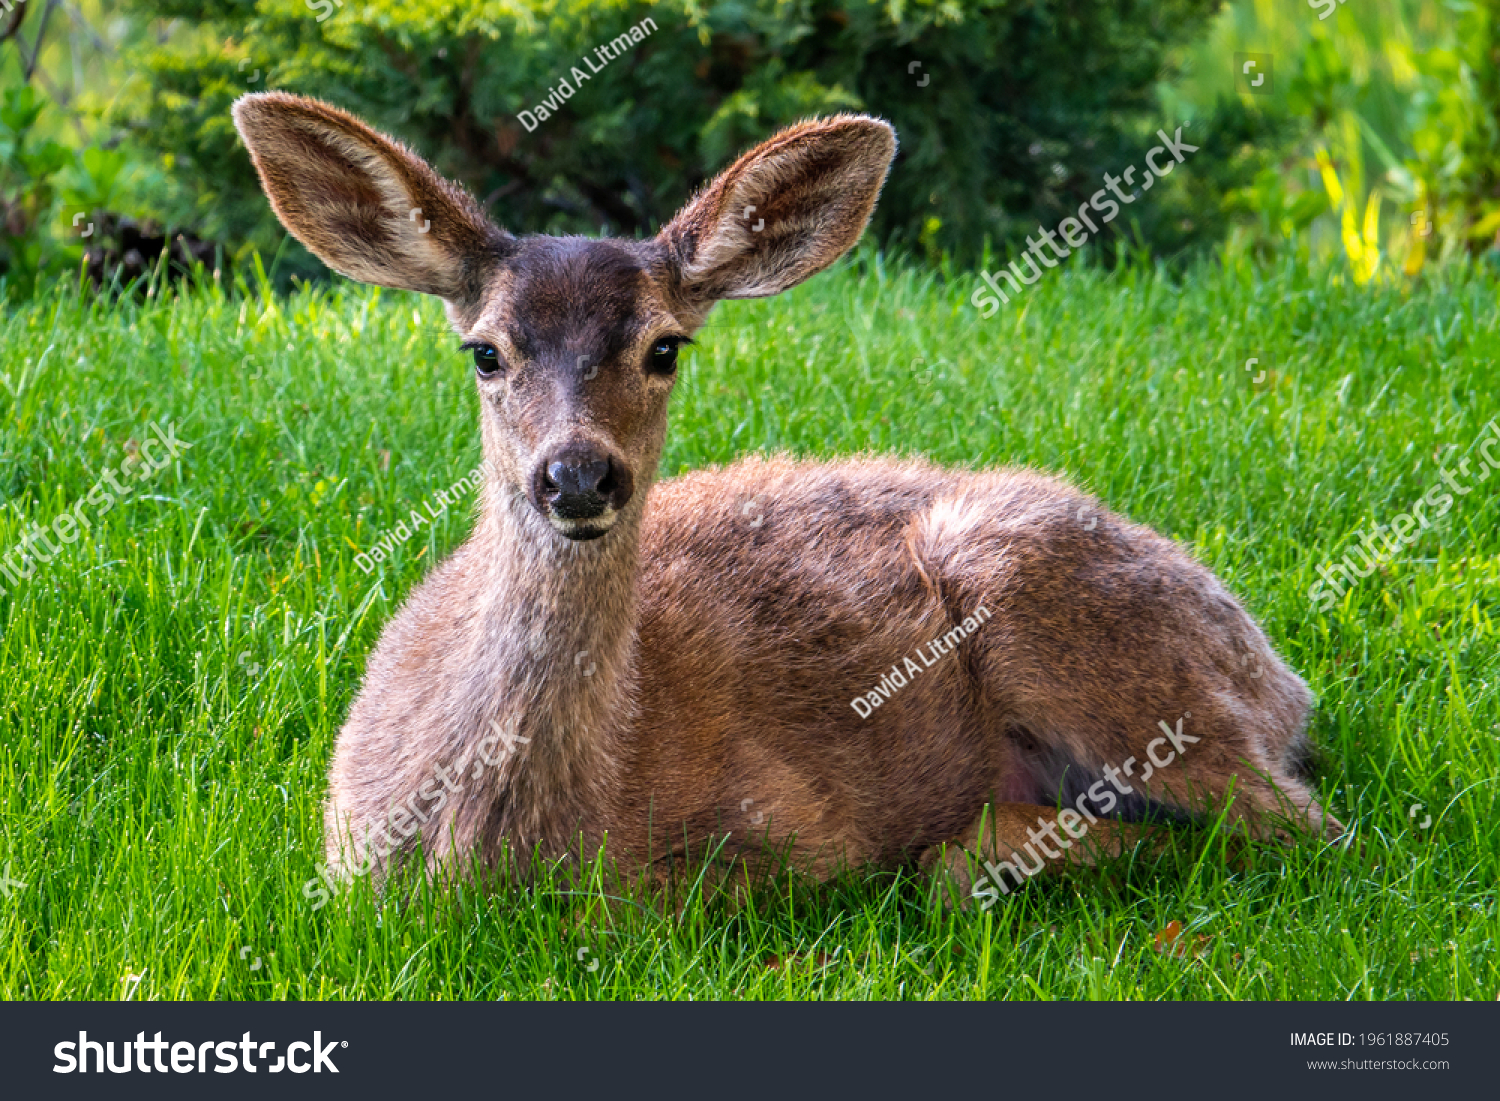 A Columbian Black-tailed deer doe (Odocoileus hemionus) sits on the grass in the hills of Monterey, California. The black-tail is a type of mule deer of the Pacific Northwest.